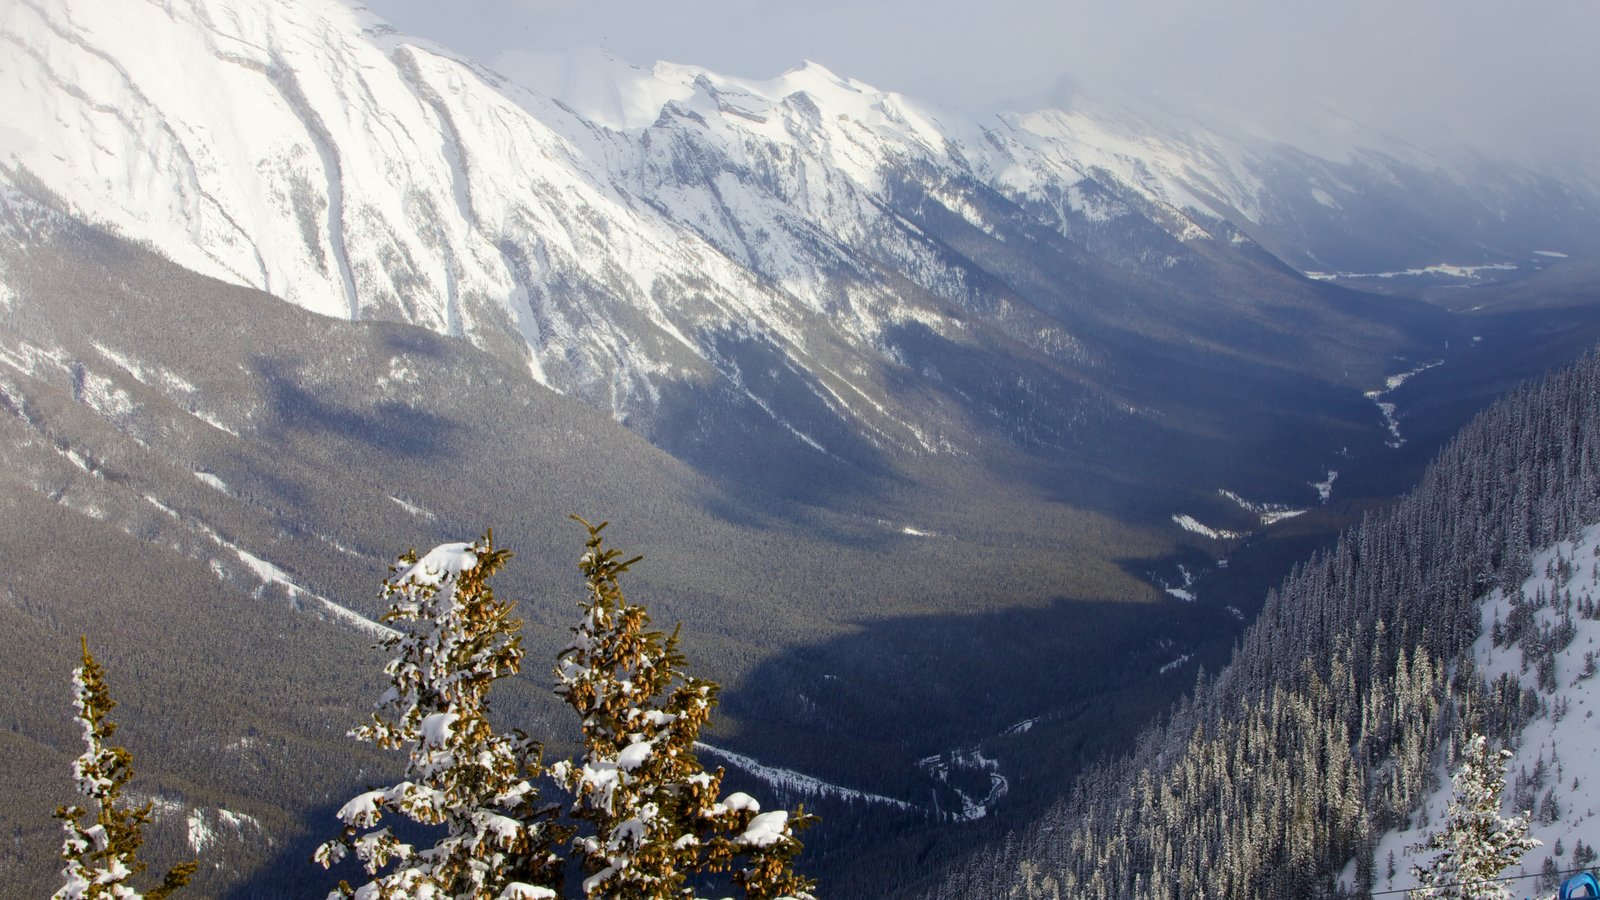 Banff Gondola showing mountains, snow and landscape views